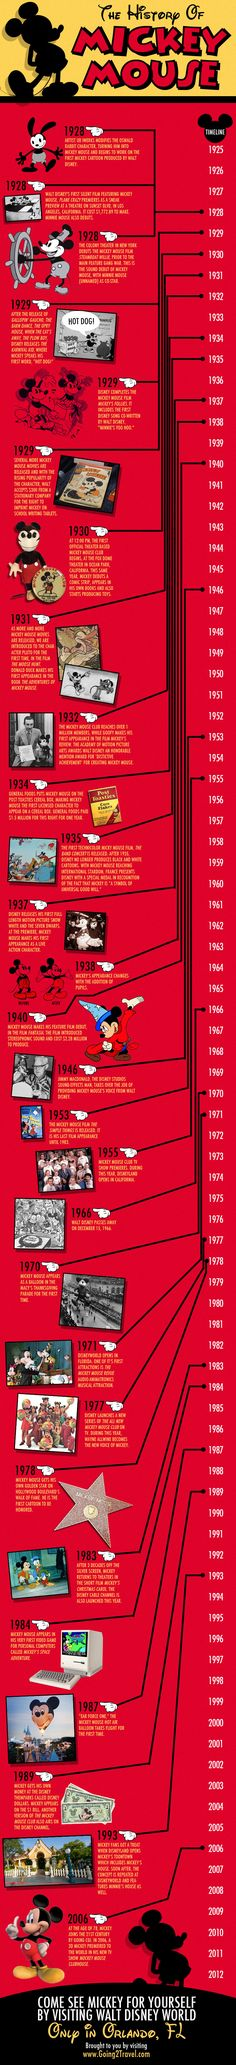 Enjoy this visual history trip through time of Mickey Mouse. #disney #mickeymouse